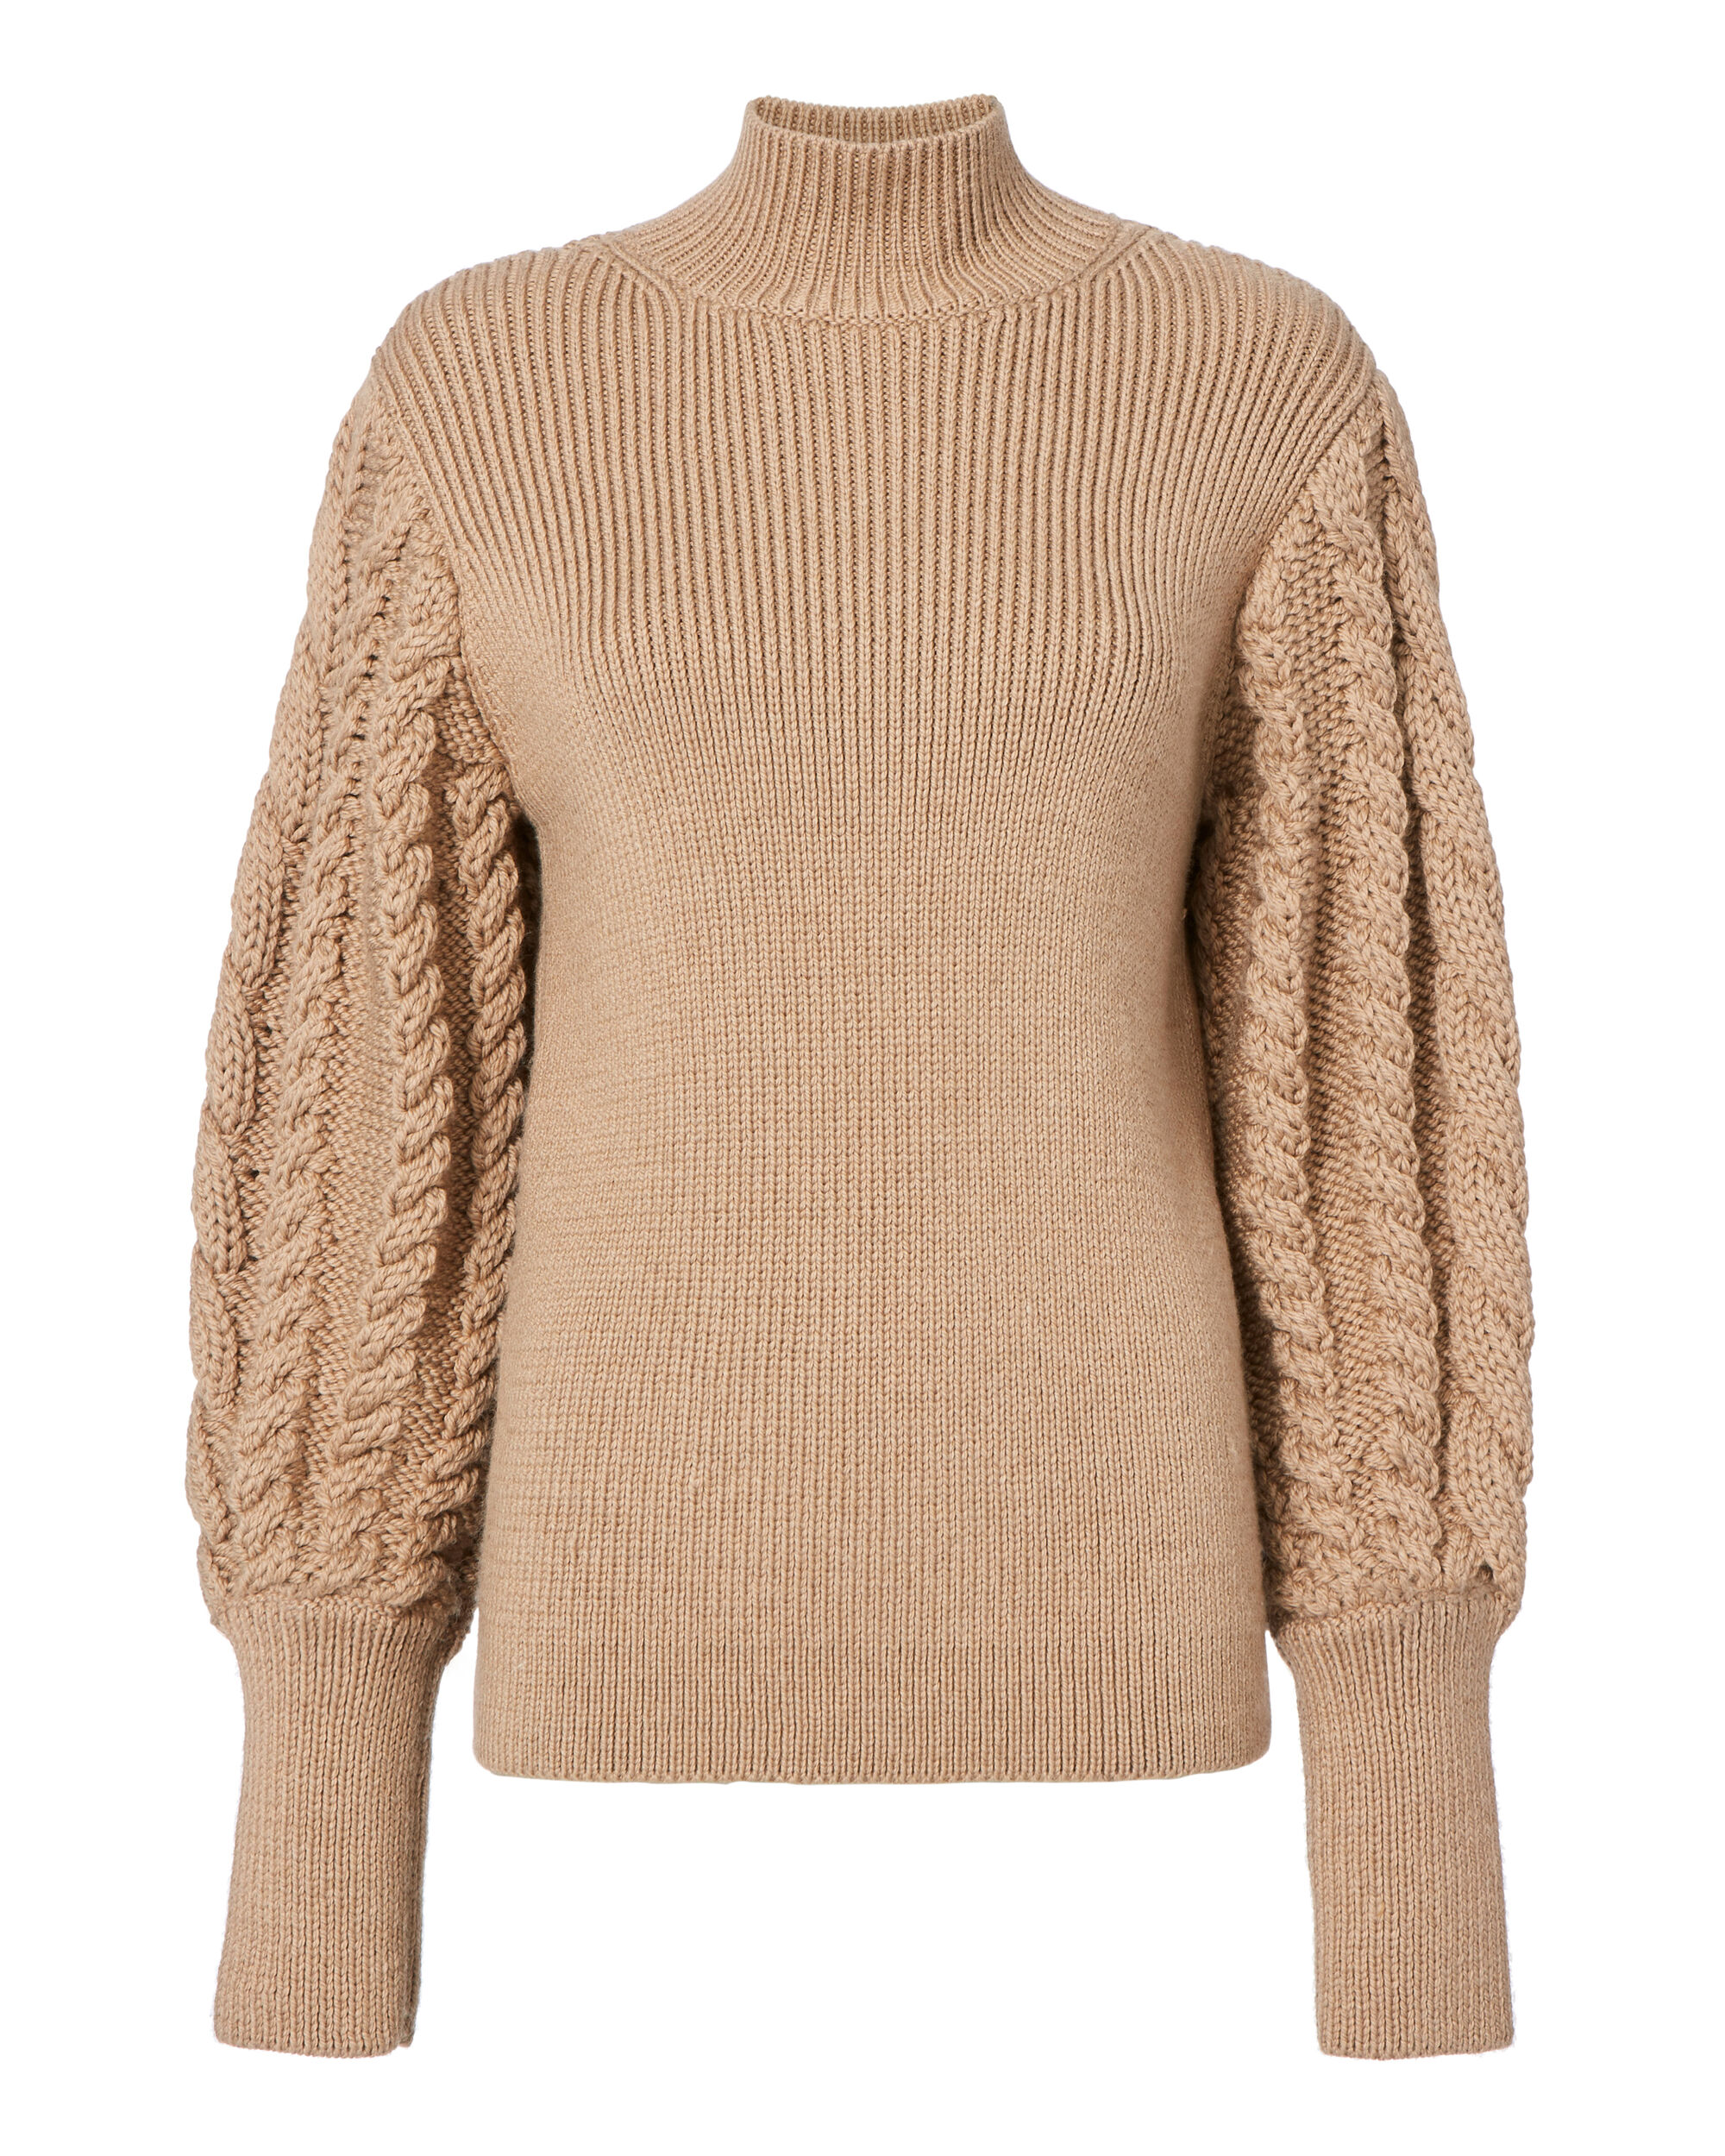 Cable Knit Sleeve Sweater, BEIGE/KHAKI, hi-res